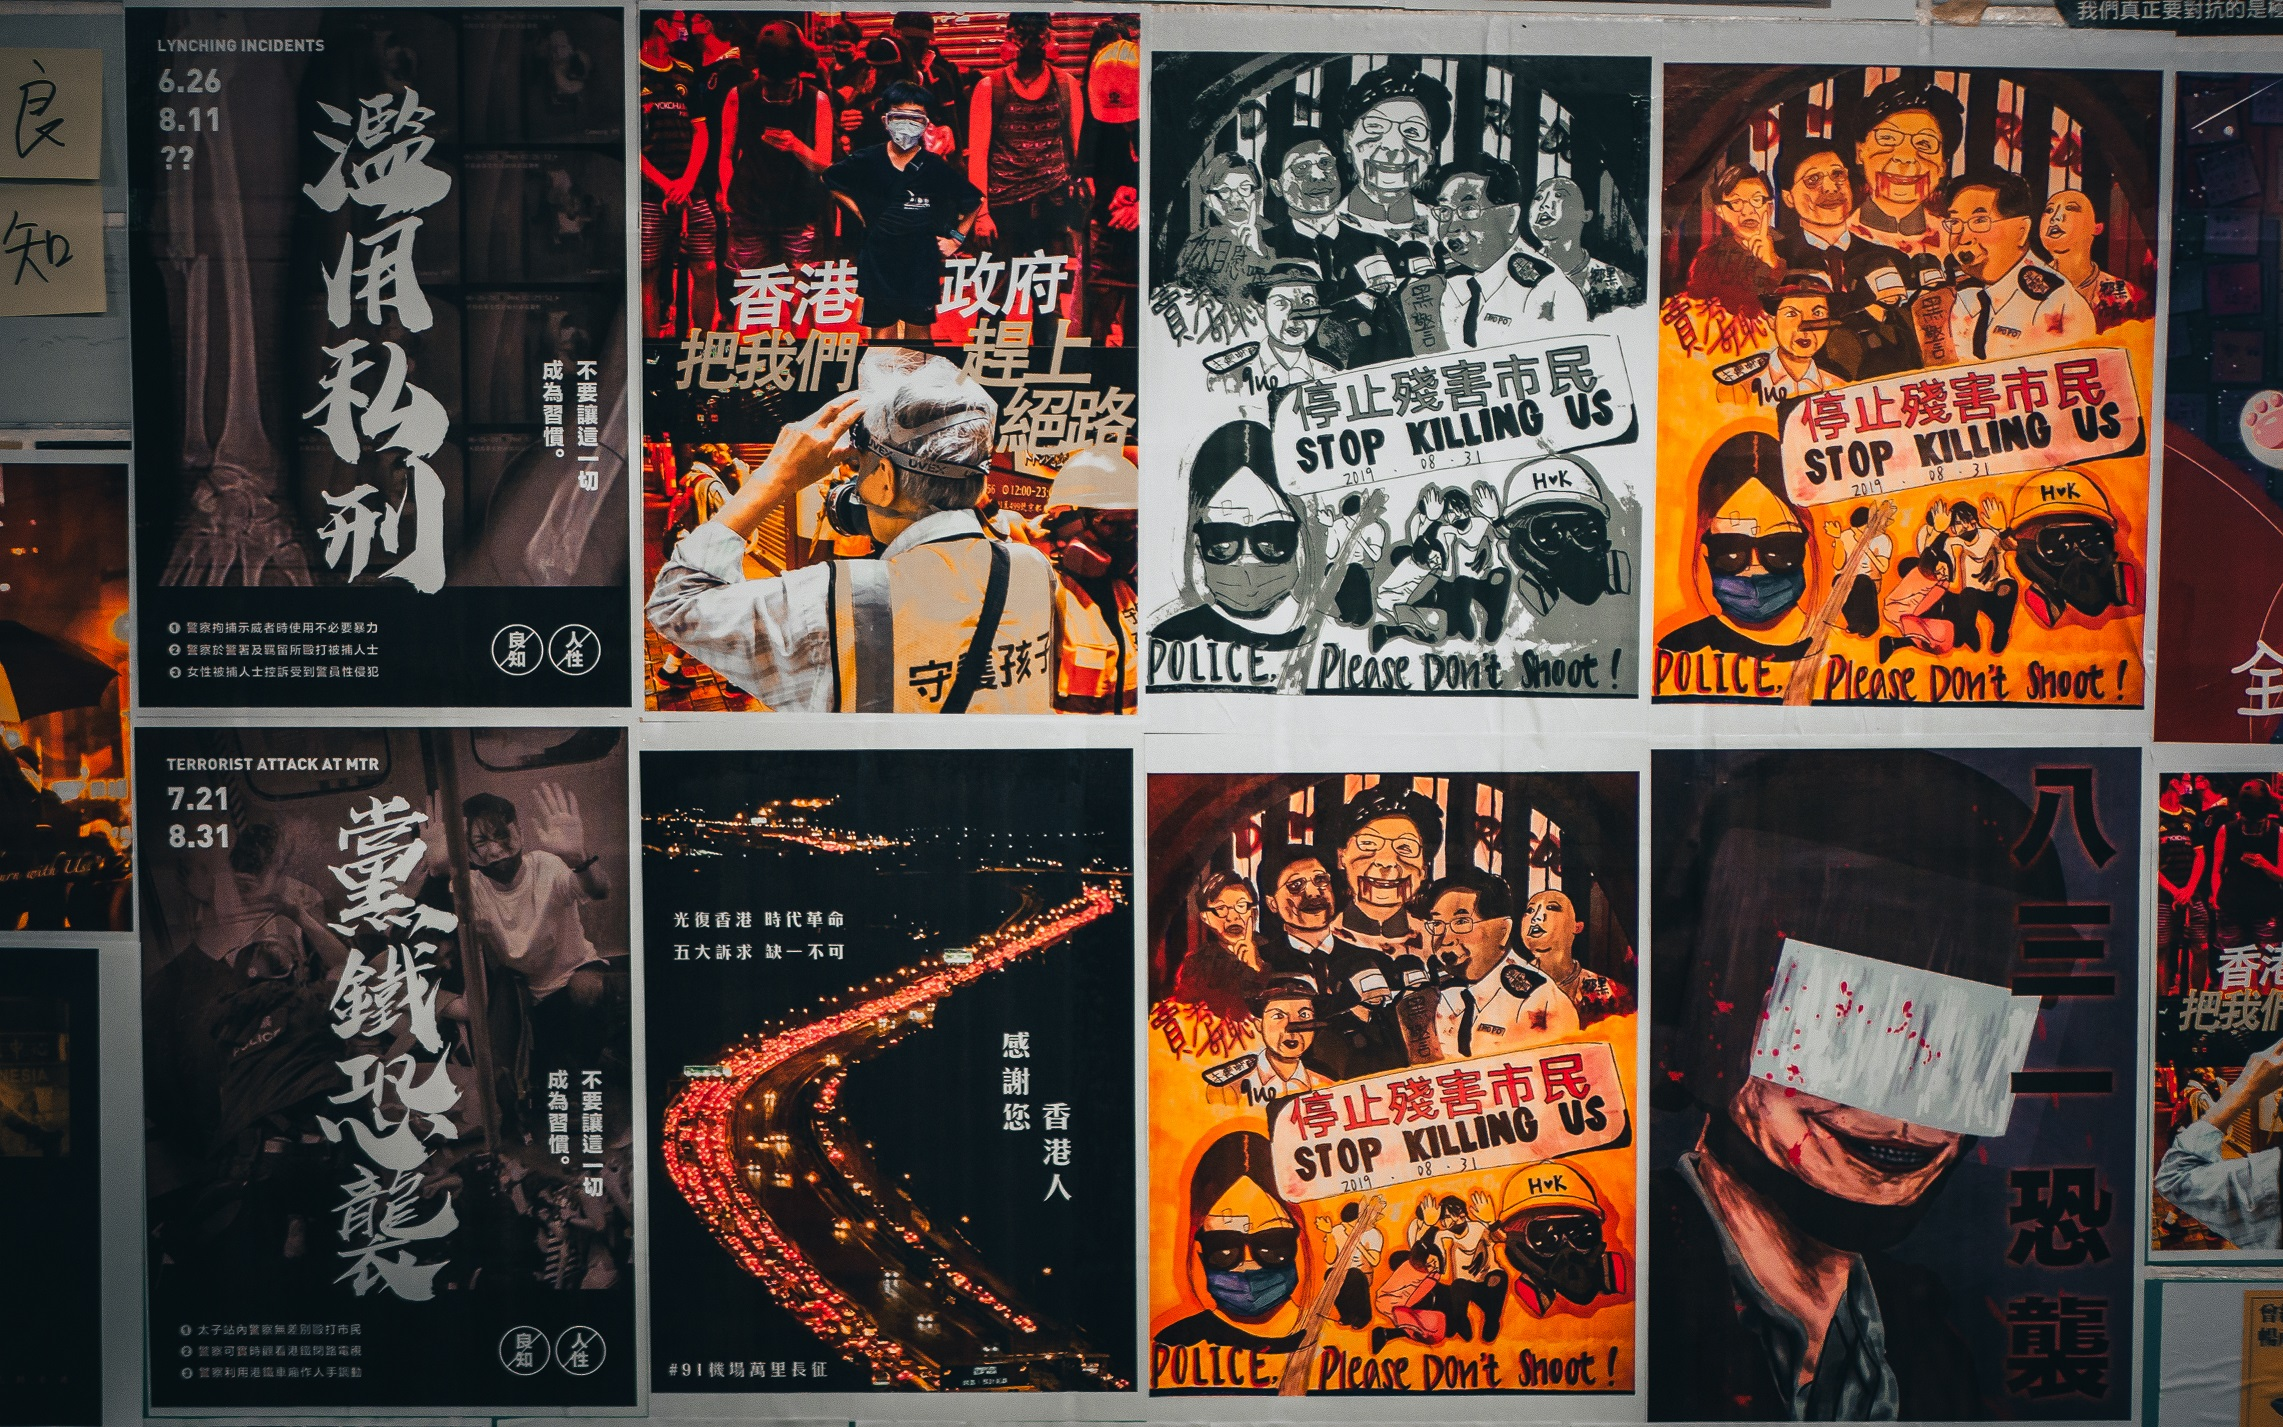 Lennon Wall posters in Hong Kong